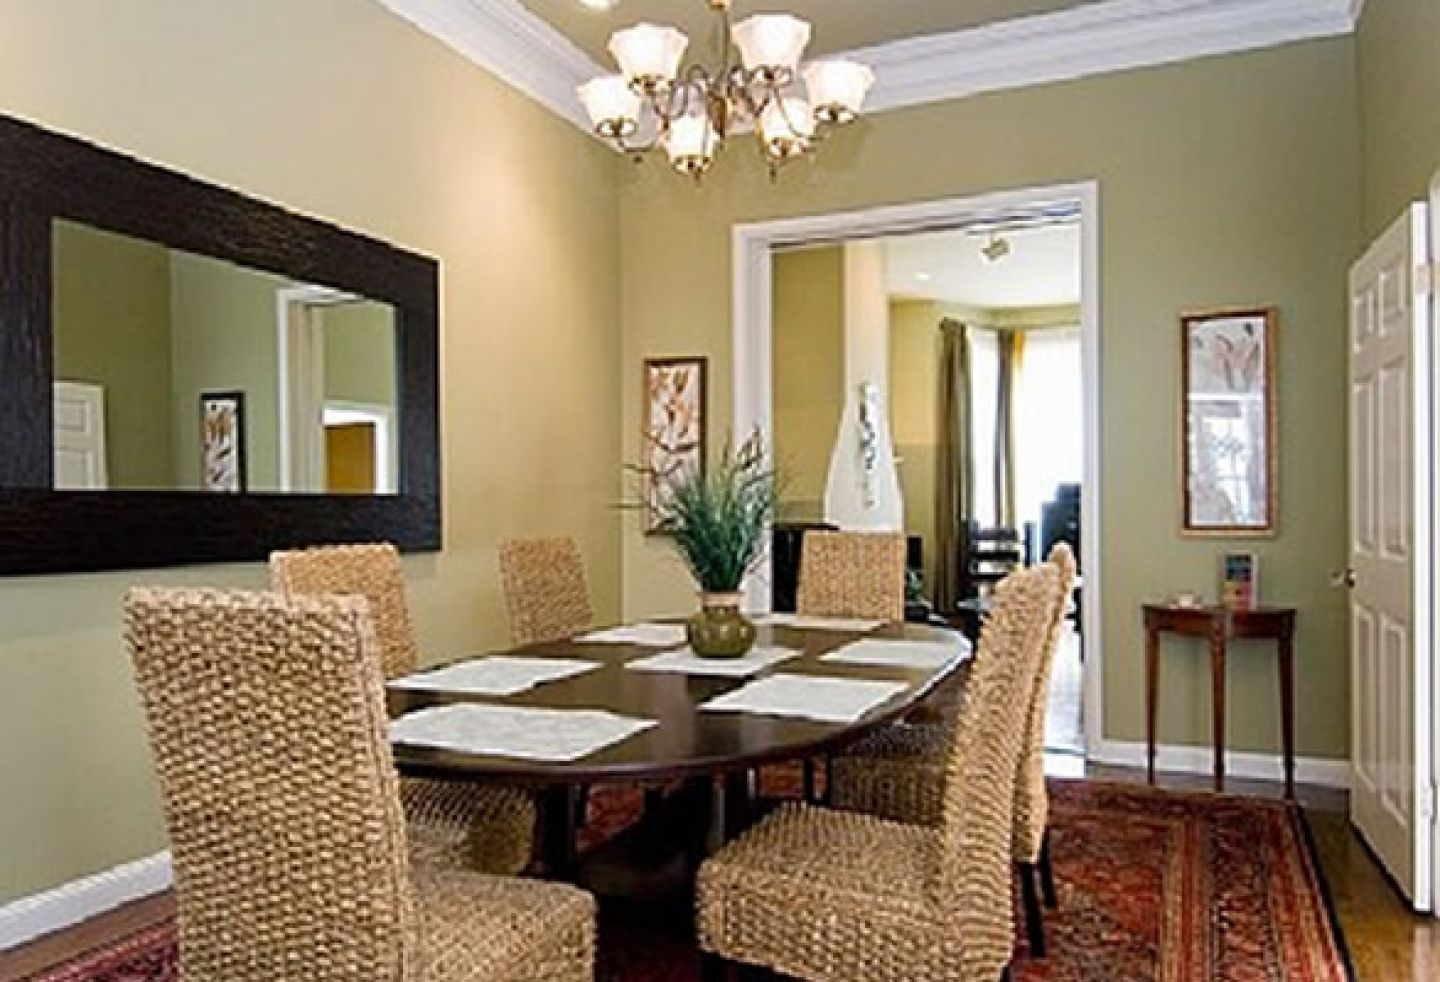 nice dining room ideas - Dining Room Decor Ideas Pinterest